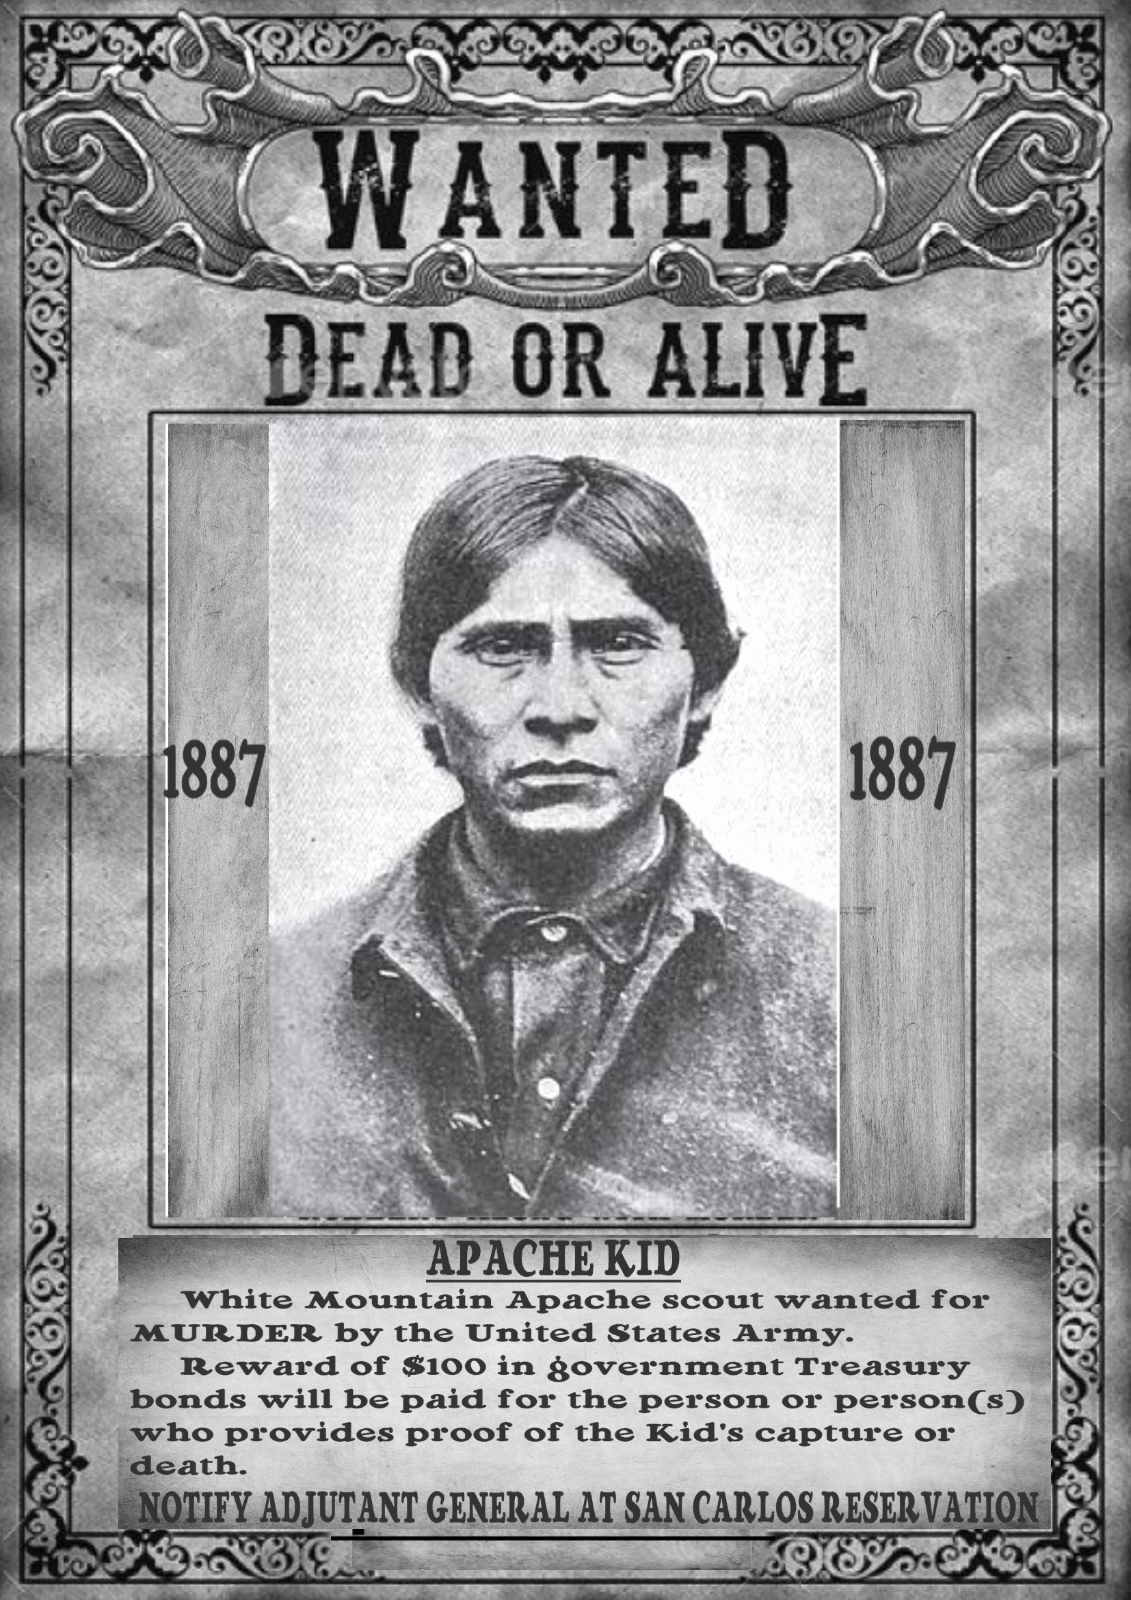 Wanted Posters Old West Inspirational Old West Wanted Posters Outlaw Kid Doc Ringo Earp Ok Corral tombstone Sundance $6 00